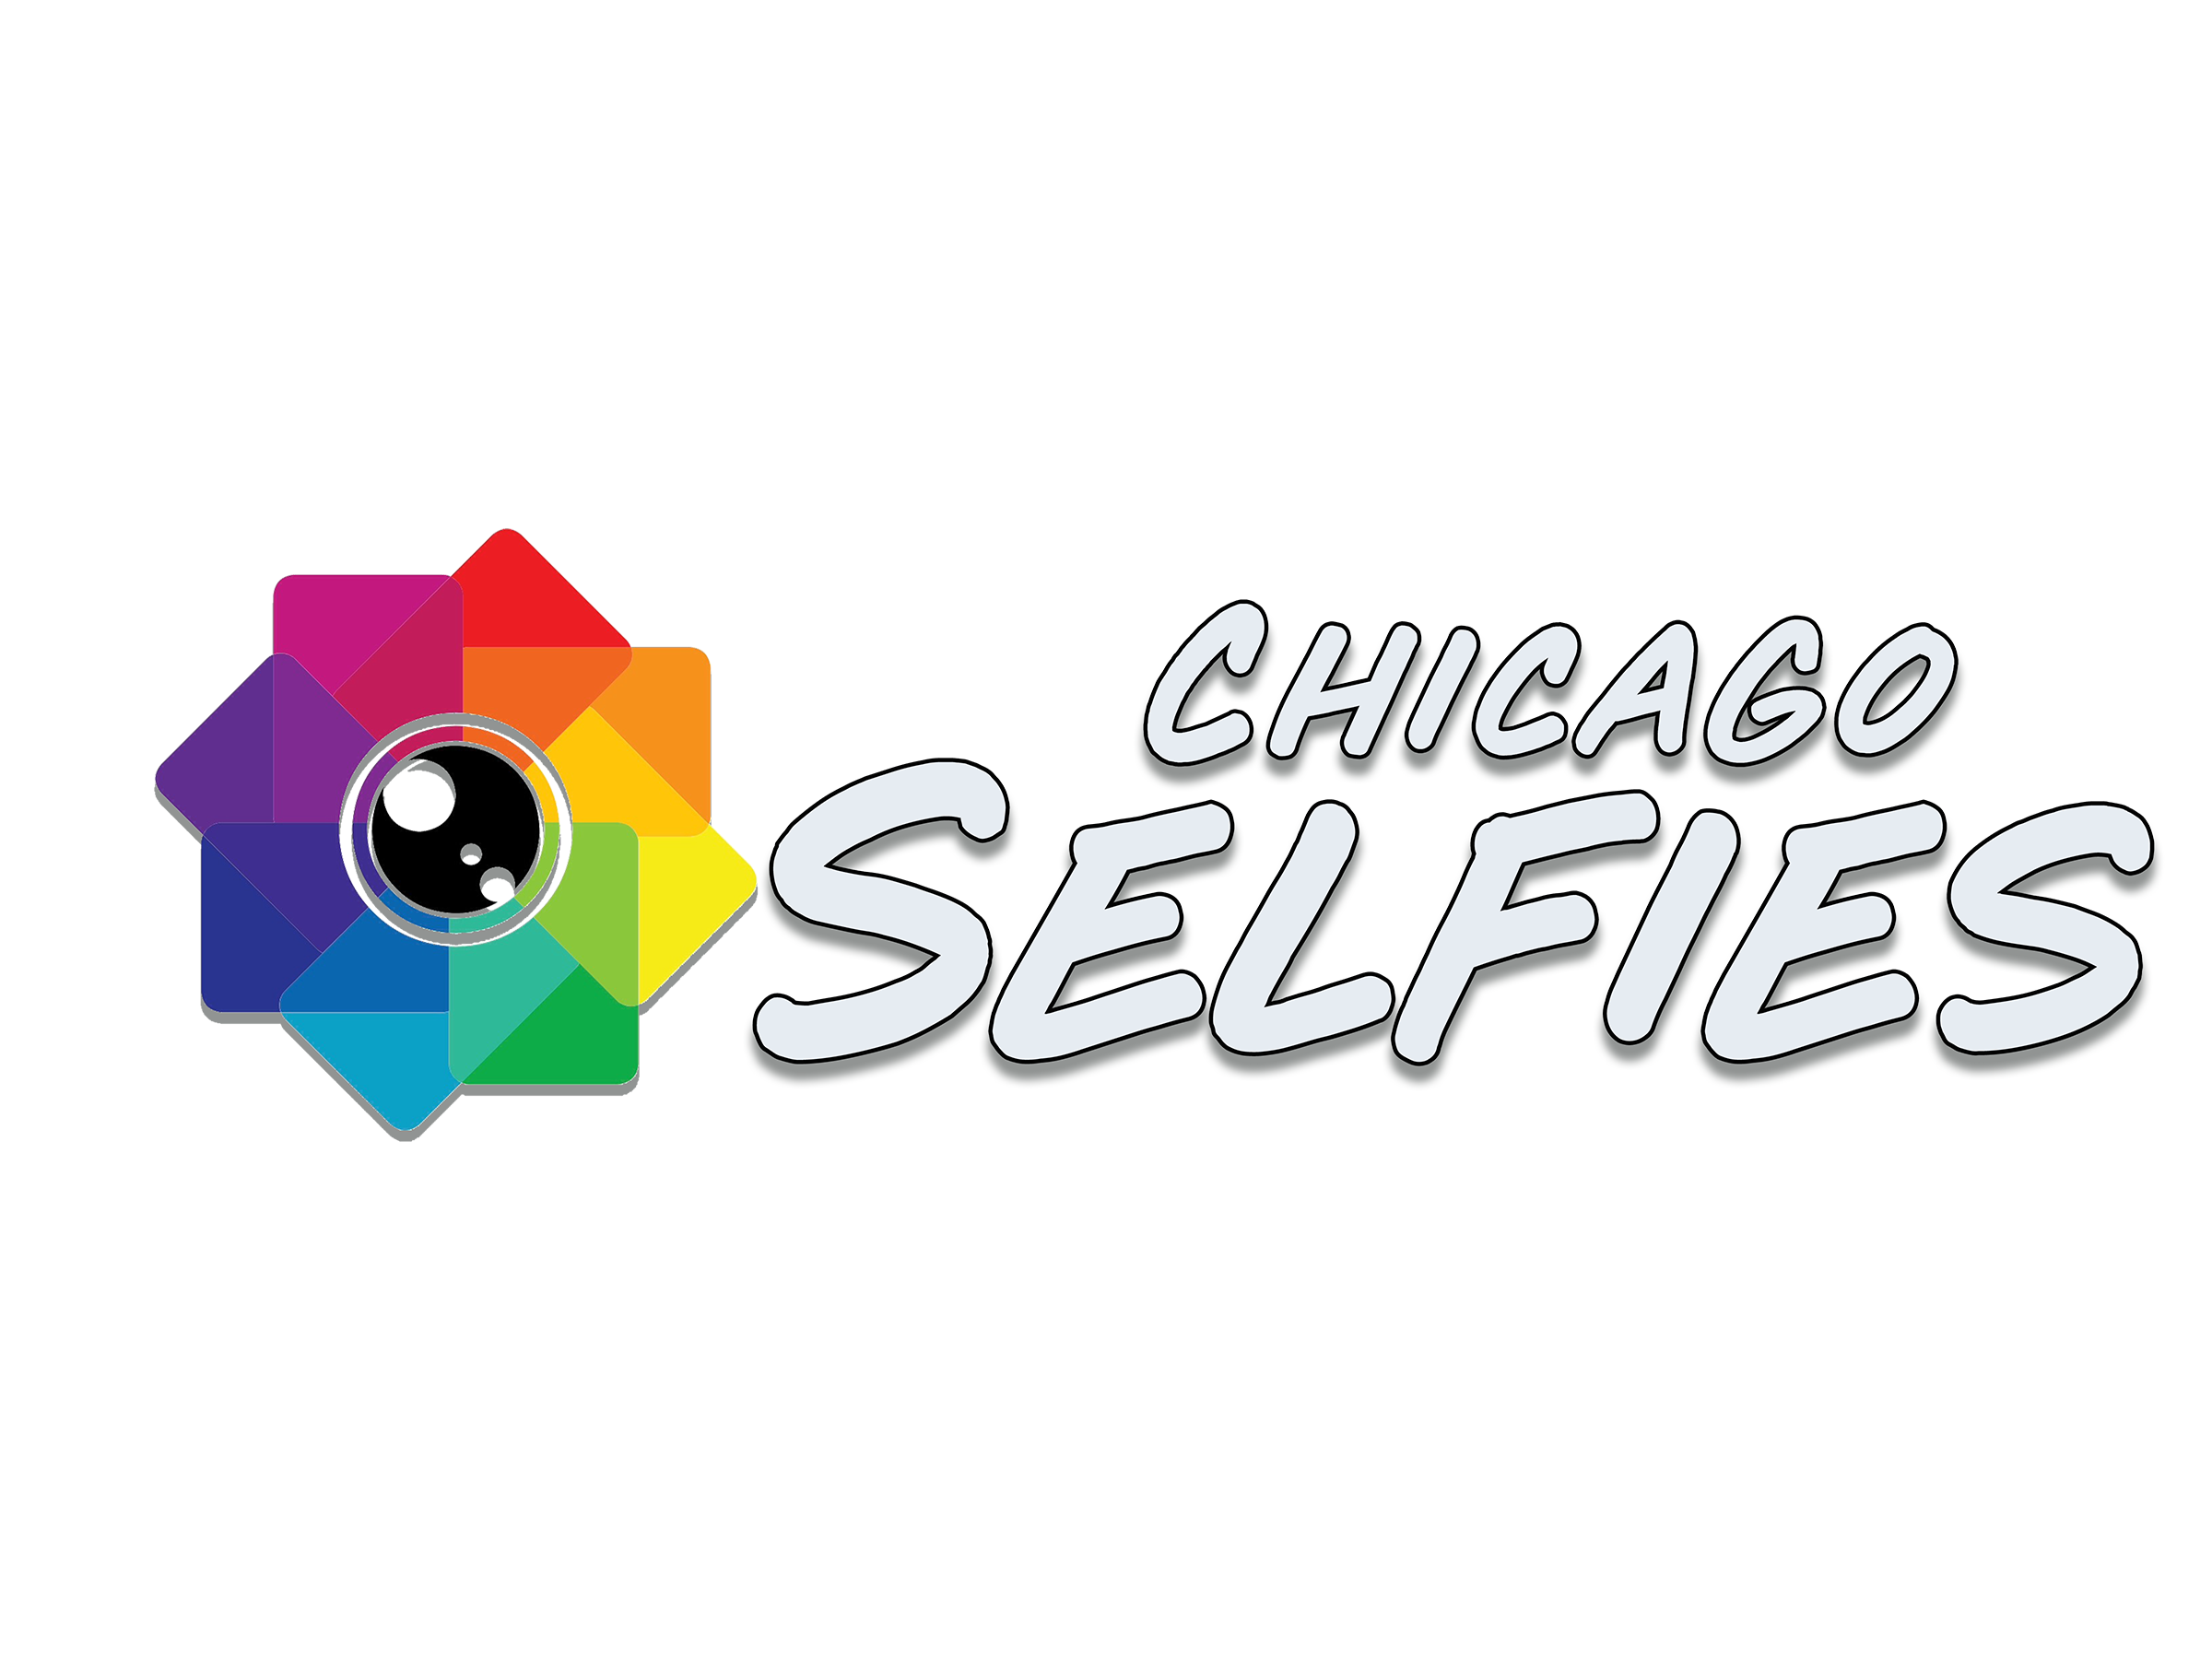 chicago selfies logo